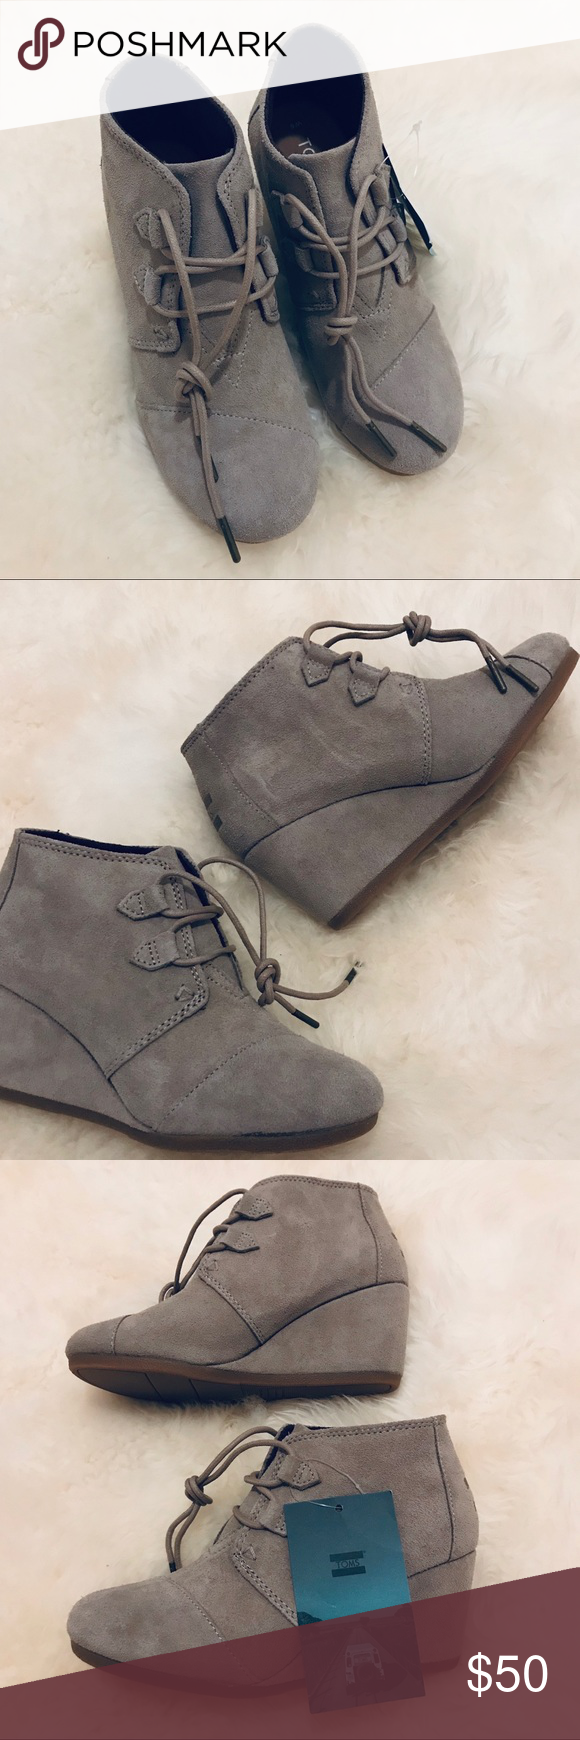 2e425b3f210a NWT Tom s womens kala suede wedge bootie size 6 NWT Tom s women s kala  suede wedge bootie. Looks great with jeans or leggings. Taupe color